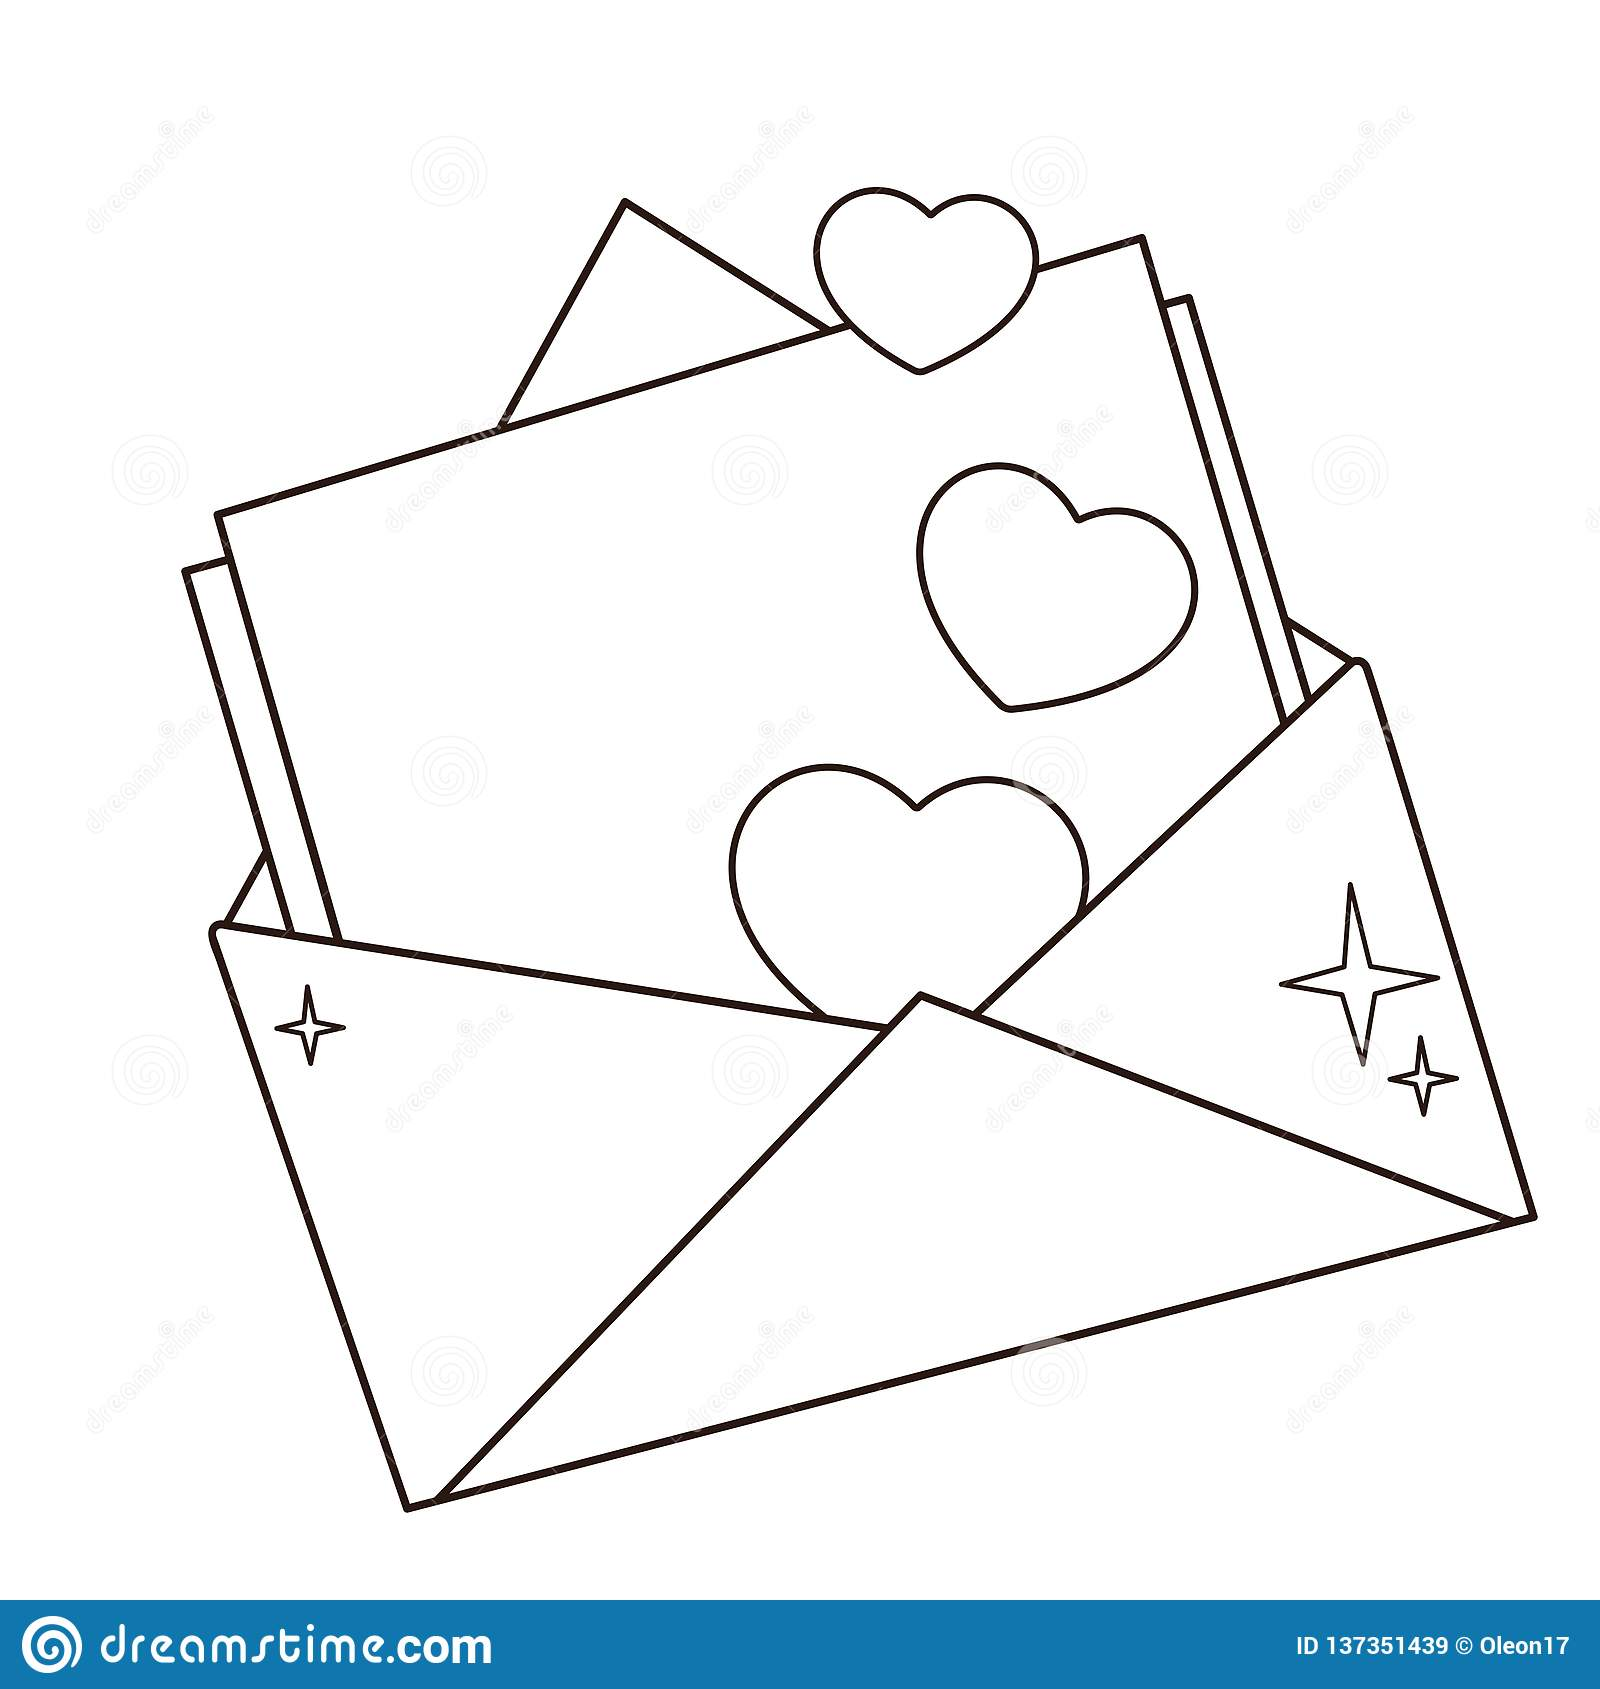 Coloring Page Outline Of Greeting Letter With Hearts Valentine S Day Birthday Coloring Book For Kids Stock Vector Illustration Of Cartoon Envelope 137351439